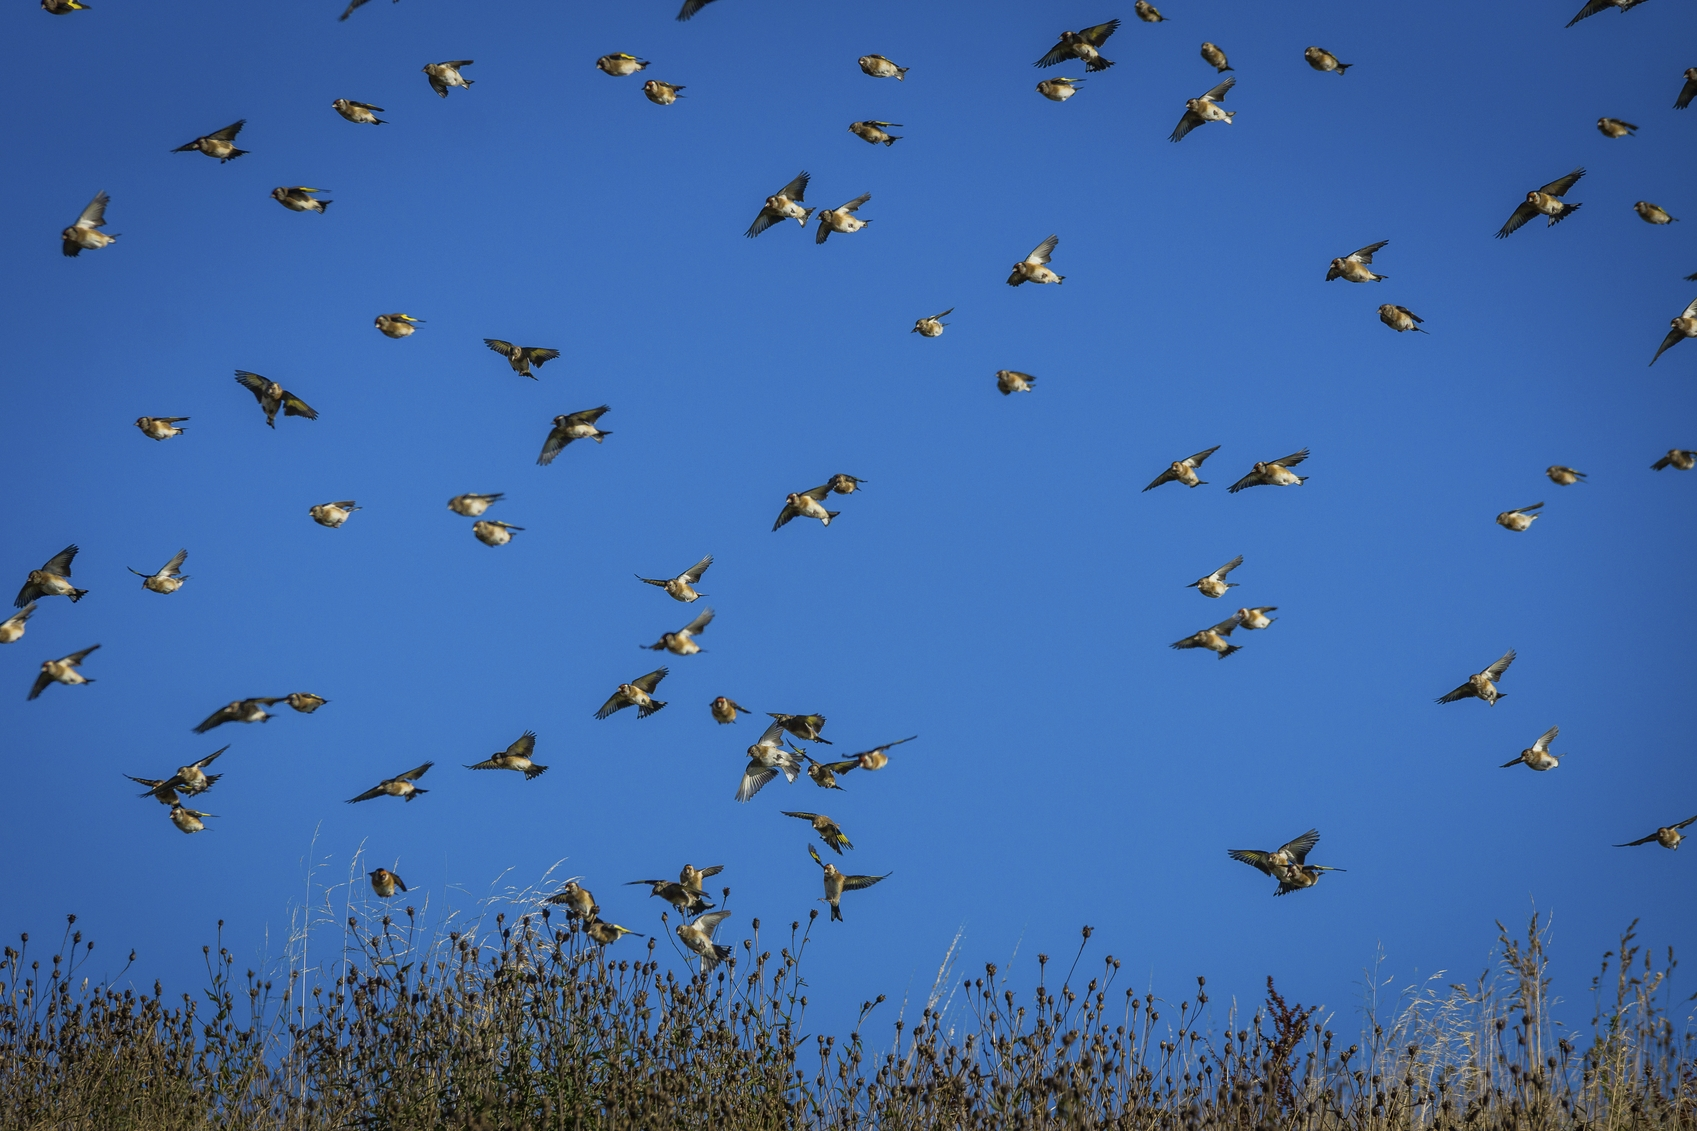 A flock of goldfinches in flight.